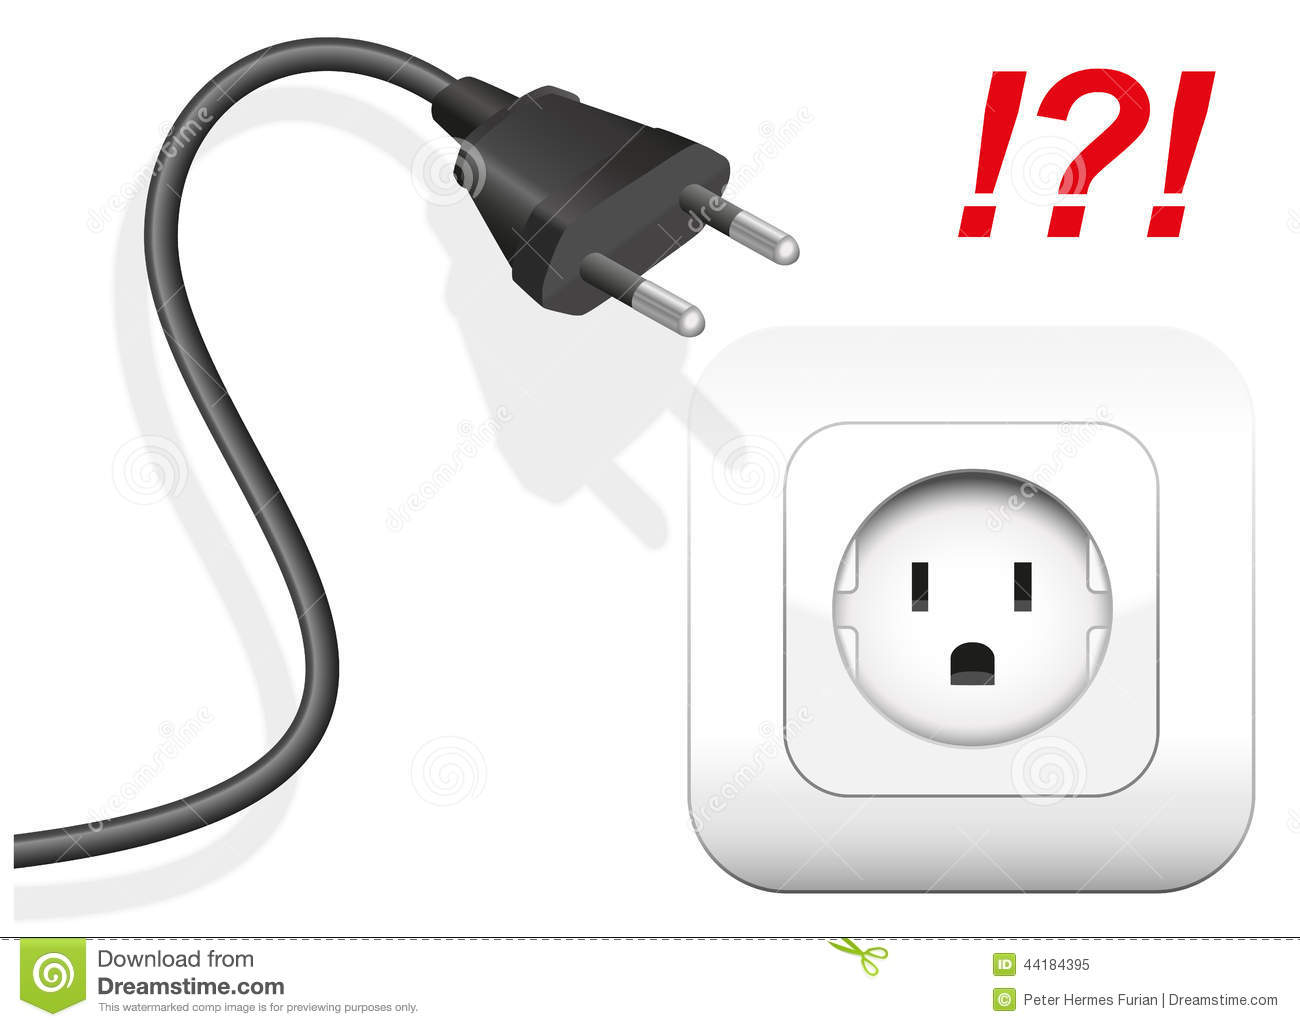 Plug 31863 likewise Clipart 9978 together with A basketball going through the hoop in black and white 0515 1003 0104 1027 further Electric Plug 13513741 moreover Stock Illustration Wrong Socket Plug Connector Not  patible Has Round Metal Pins Applied Flat Pins Isolated Vector Image44184395. on electrical plug clip art